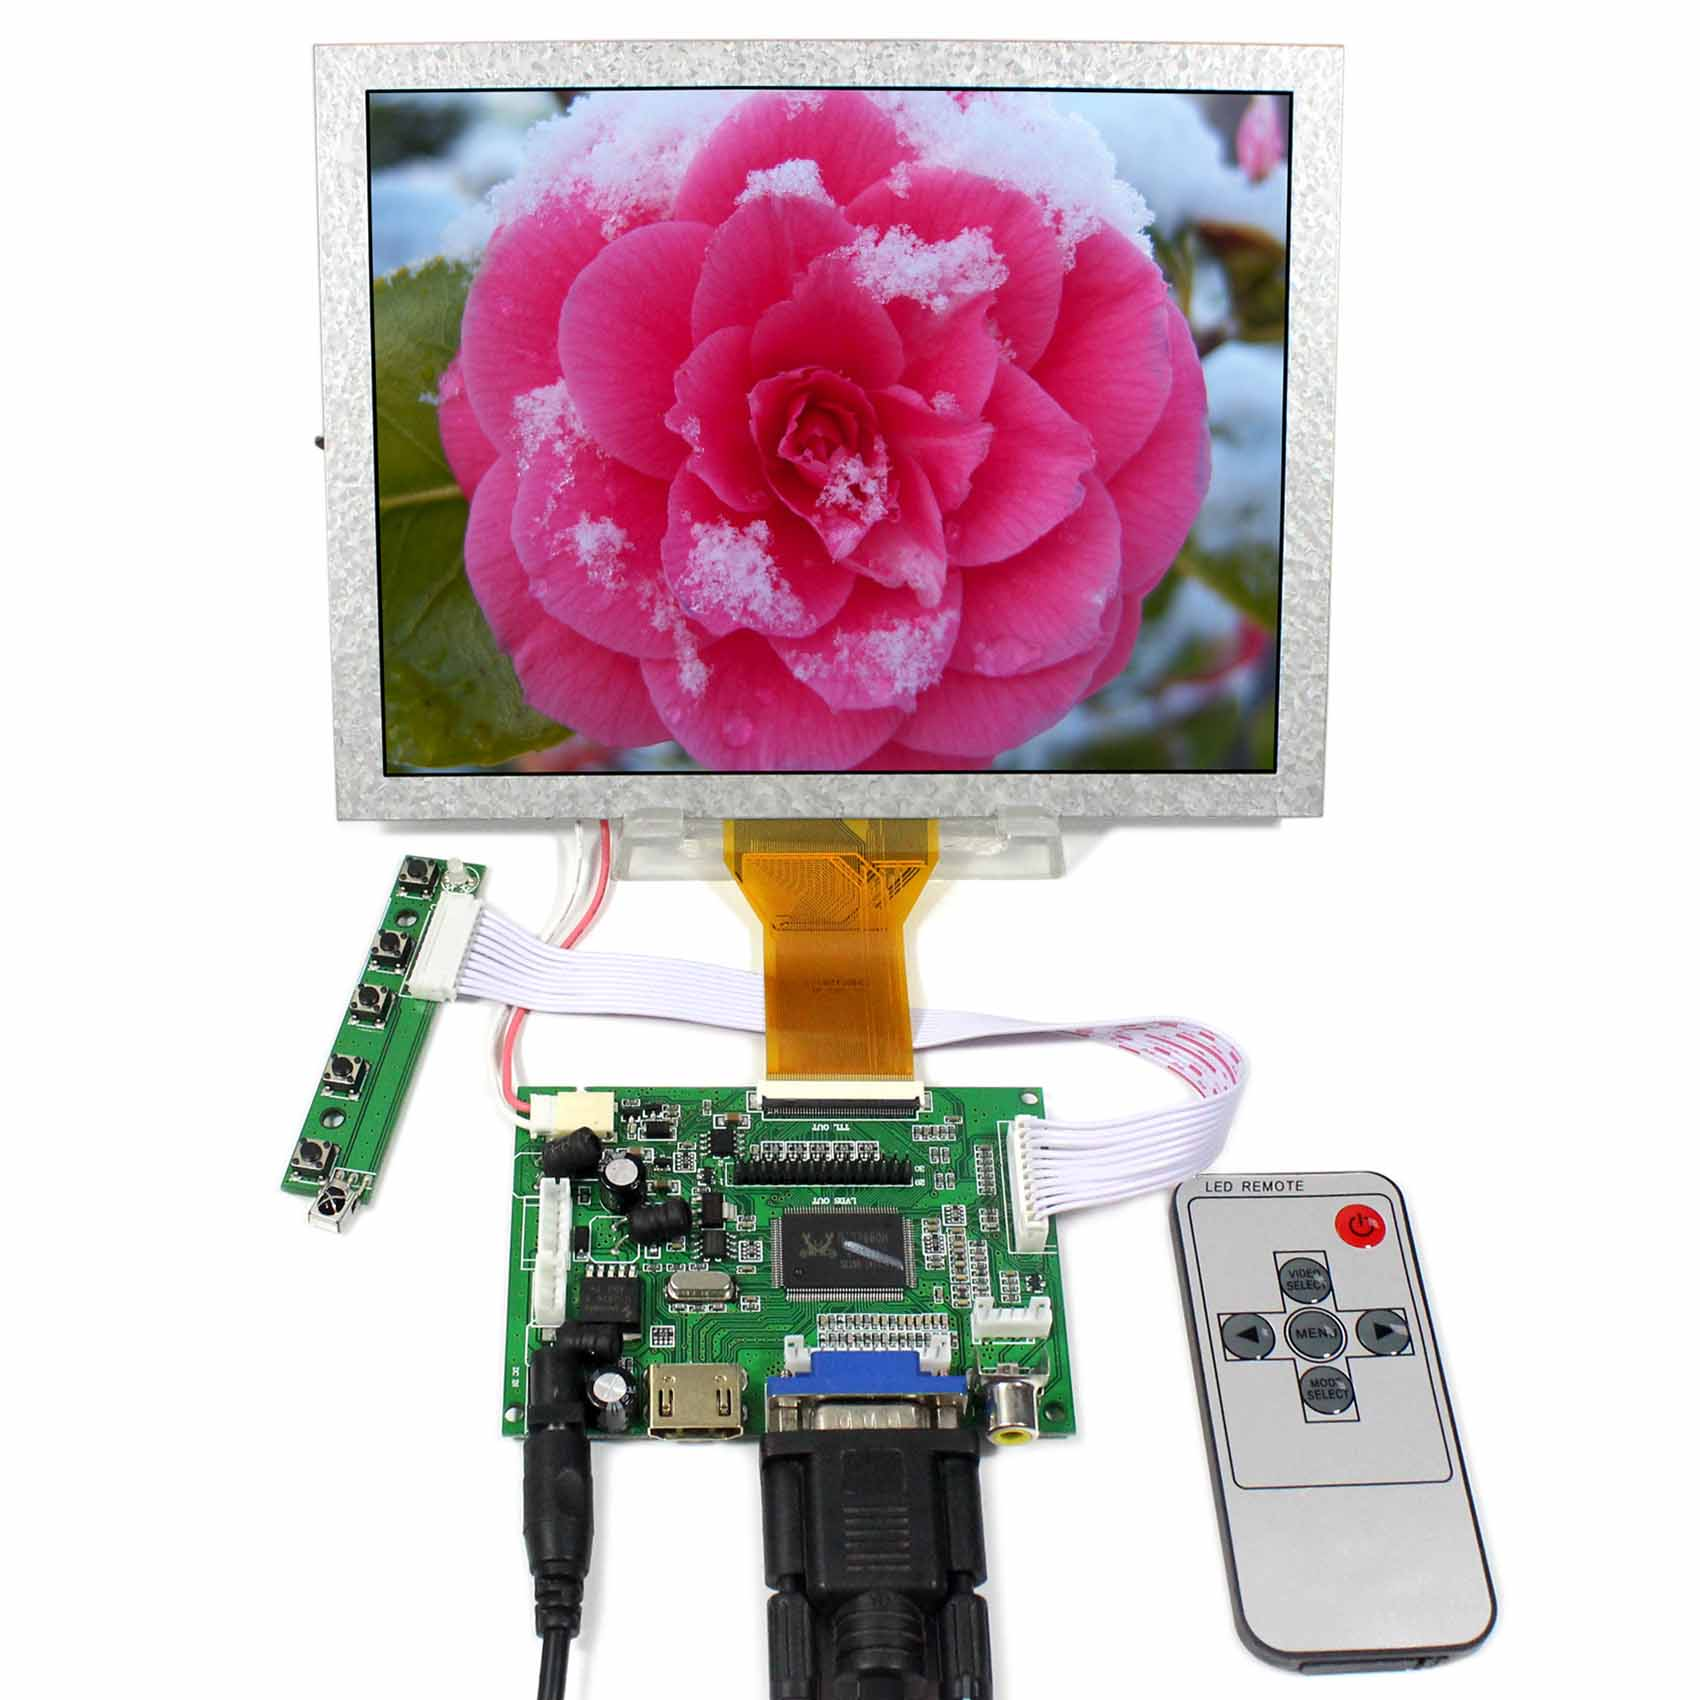 HDMI VGA 2AV+Reversing Driver board + 8inch AT080TN52 EJ080NA-05A 800x600 LCD Panel hdmi vga av audio usb fpv controller board 8inch 800x600 ej080na 05a lcd panel screen model lcd for raspberry pi